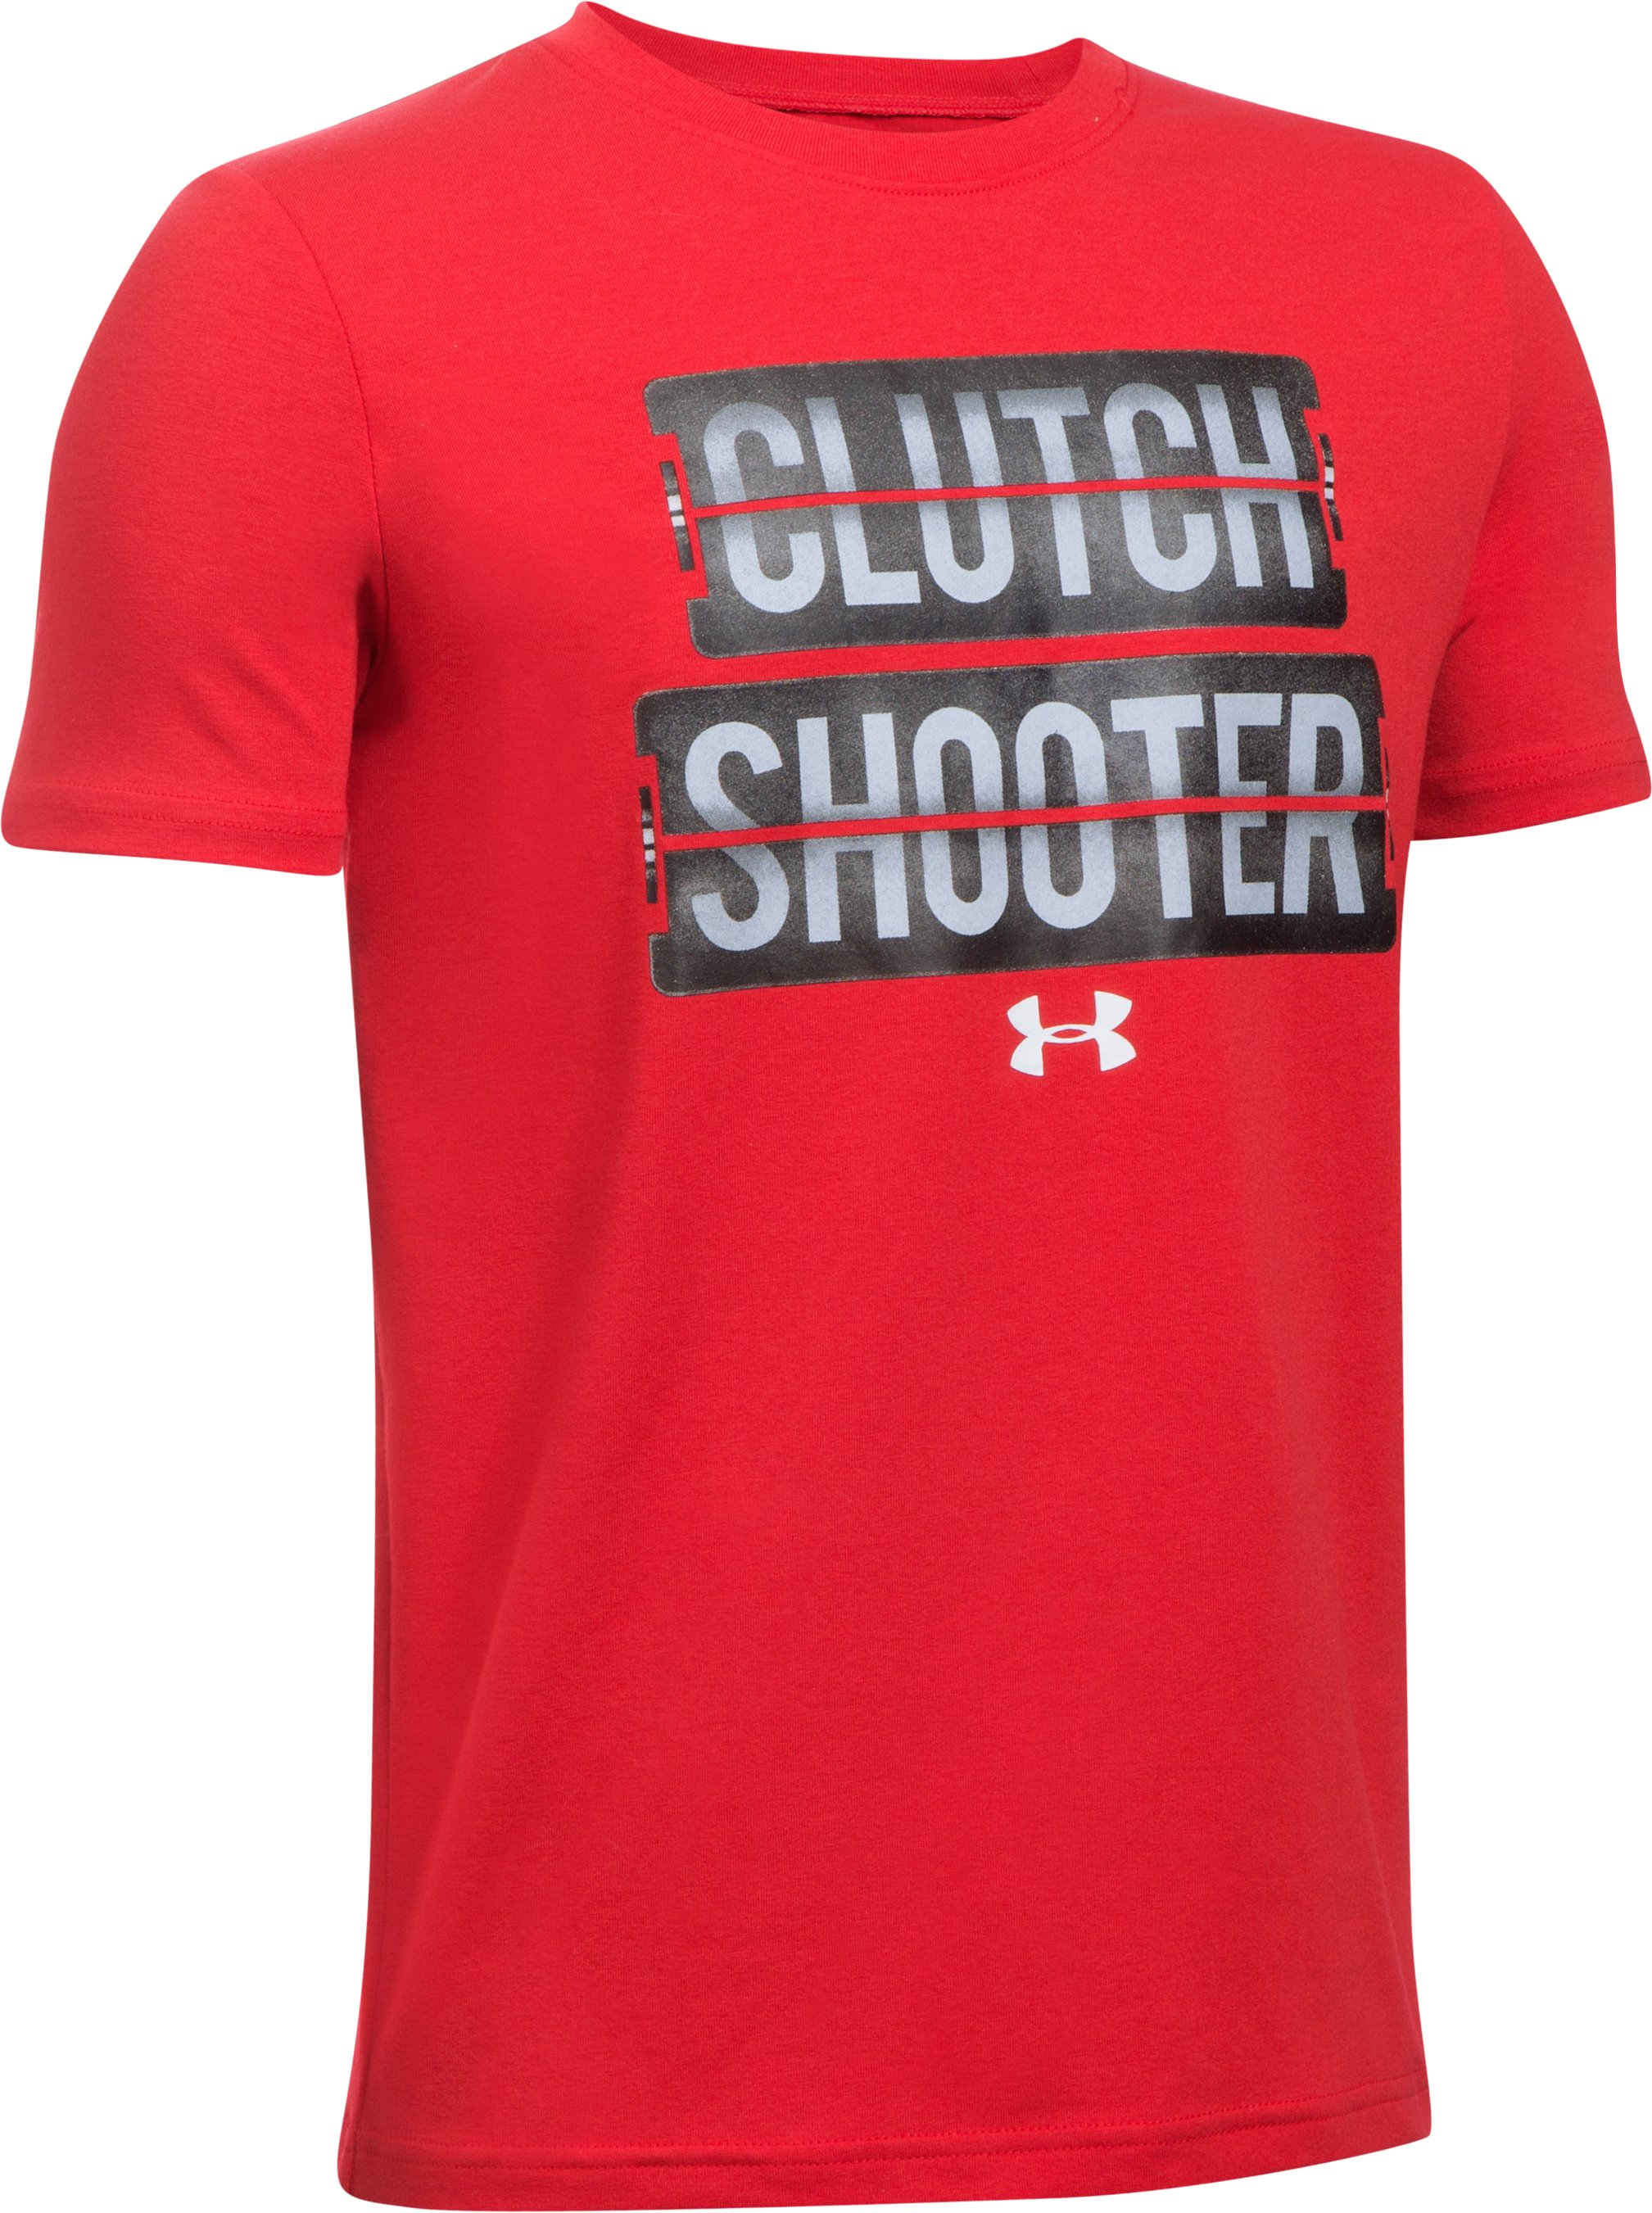 Boys' UA Clutch Shooter T-Shirt, Red,